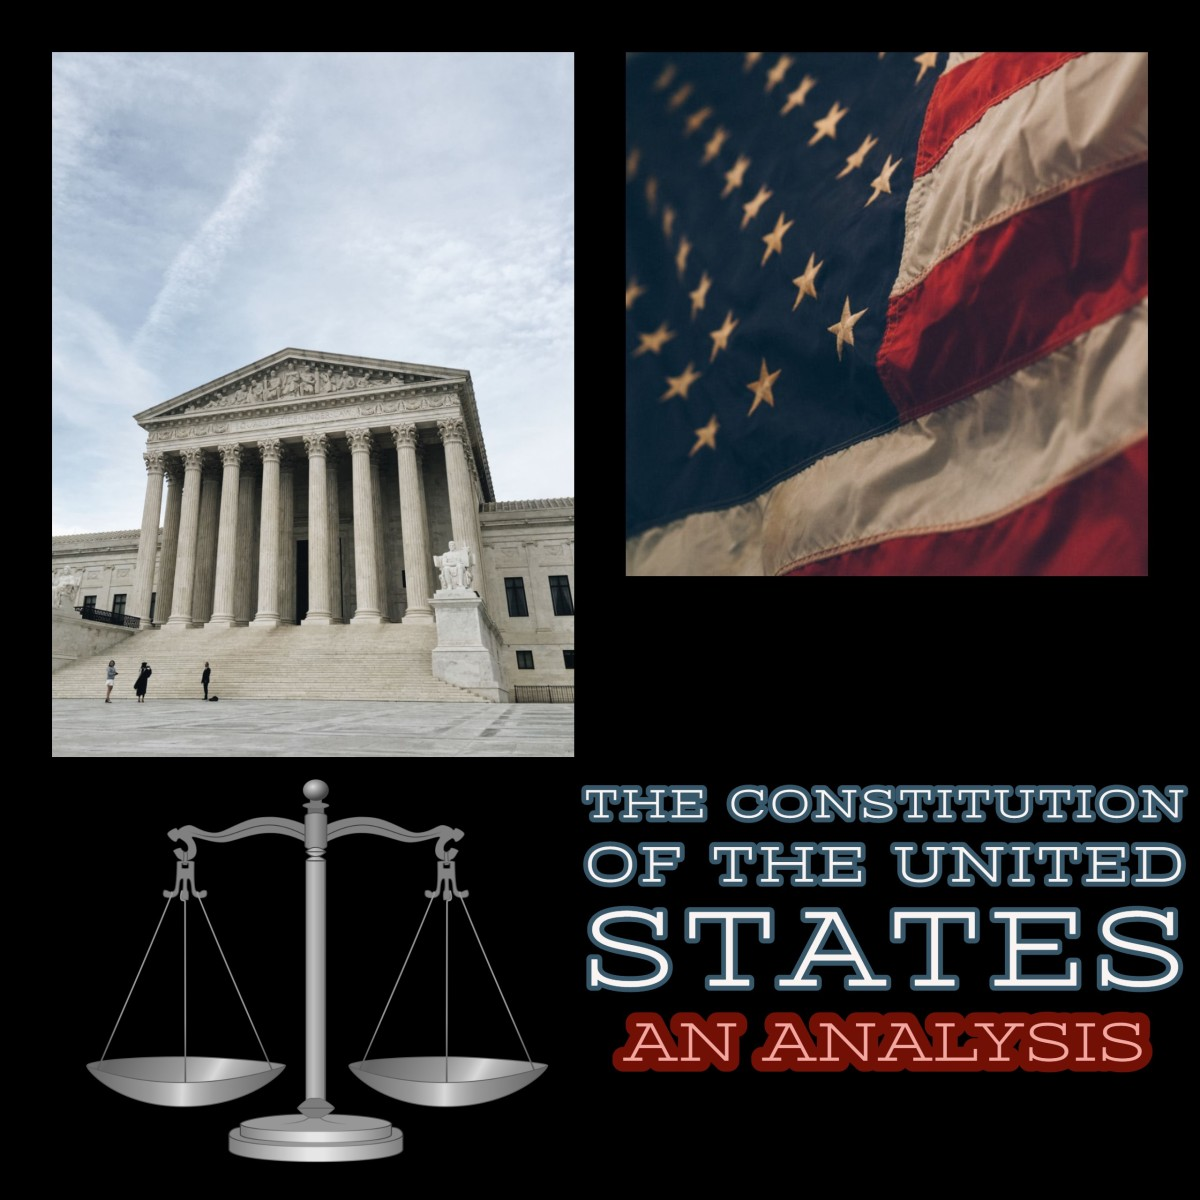 The Constitution of the United States: An Analysis.